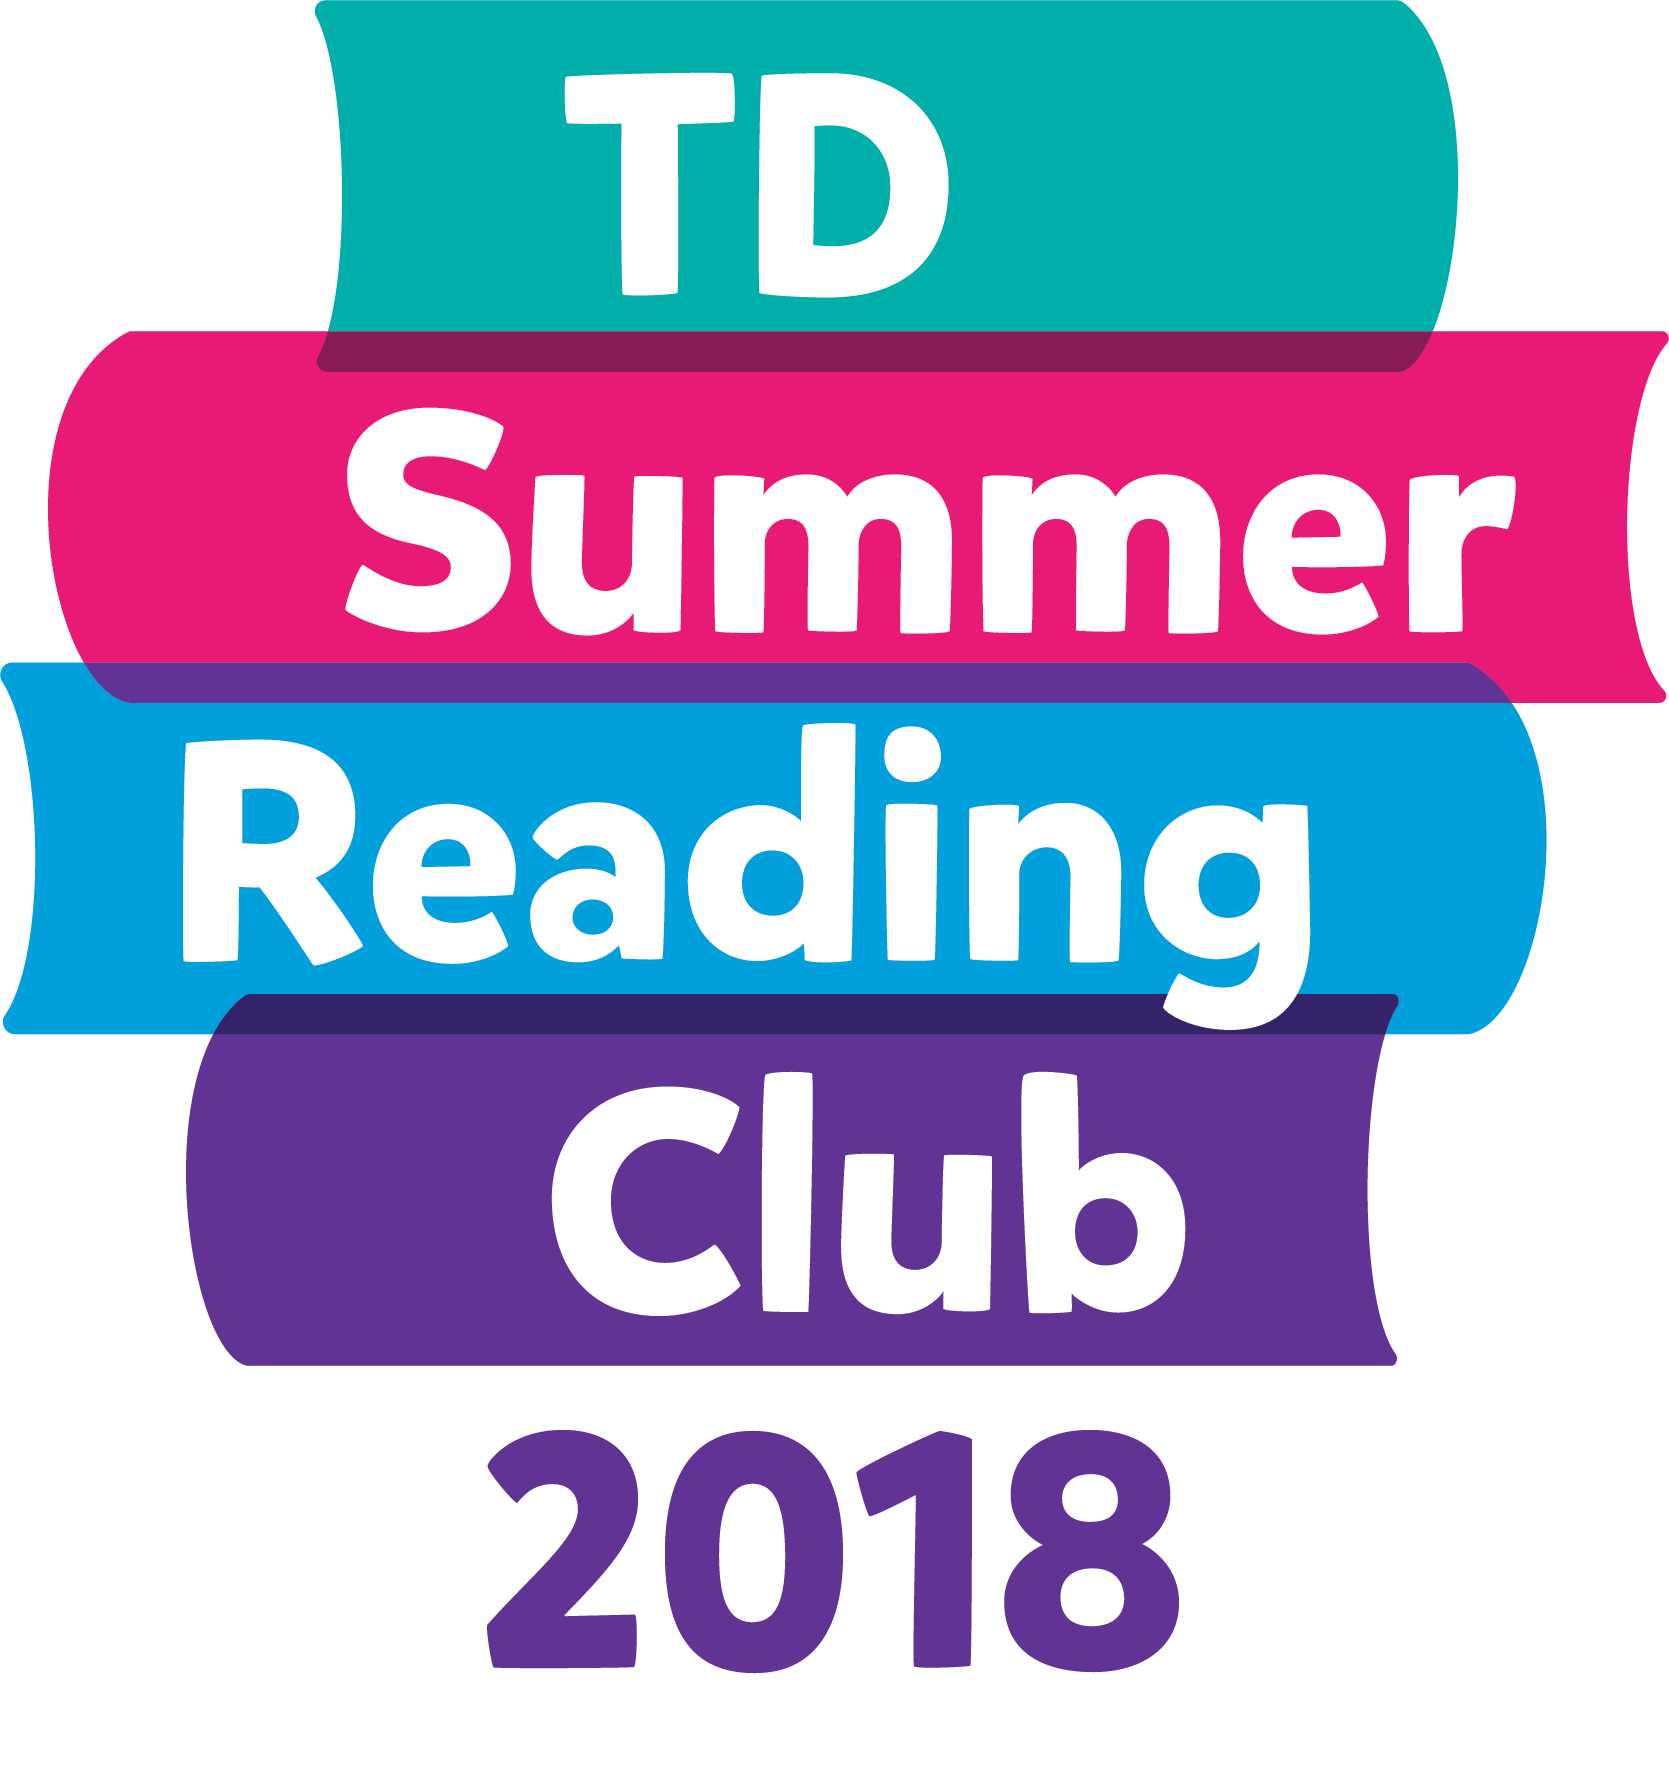 Home - TD Summer Reading Club